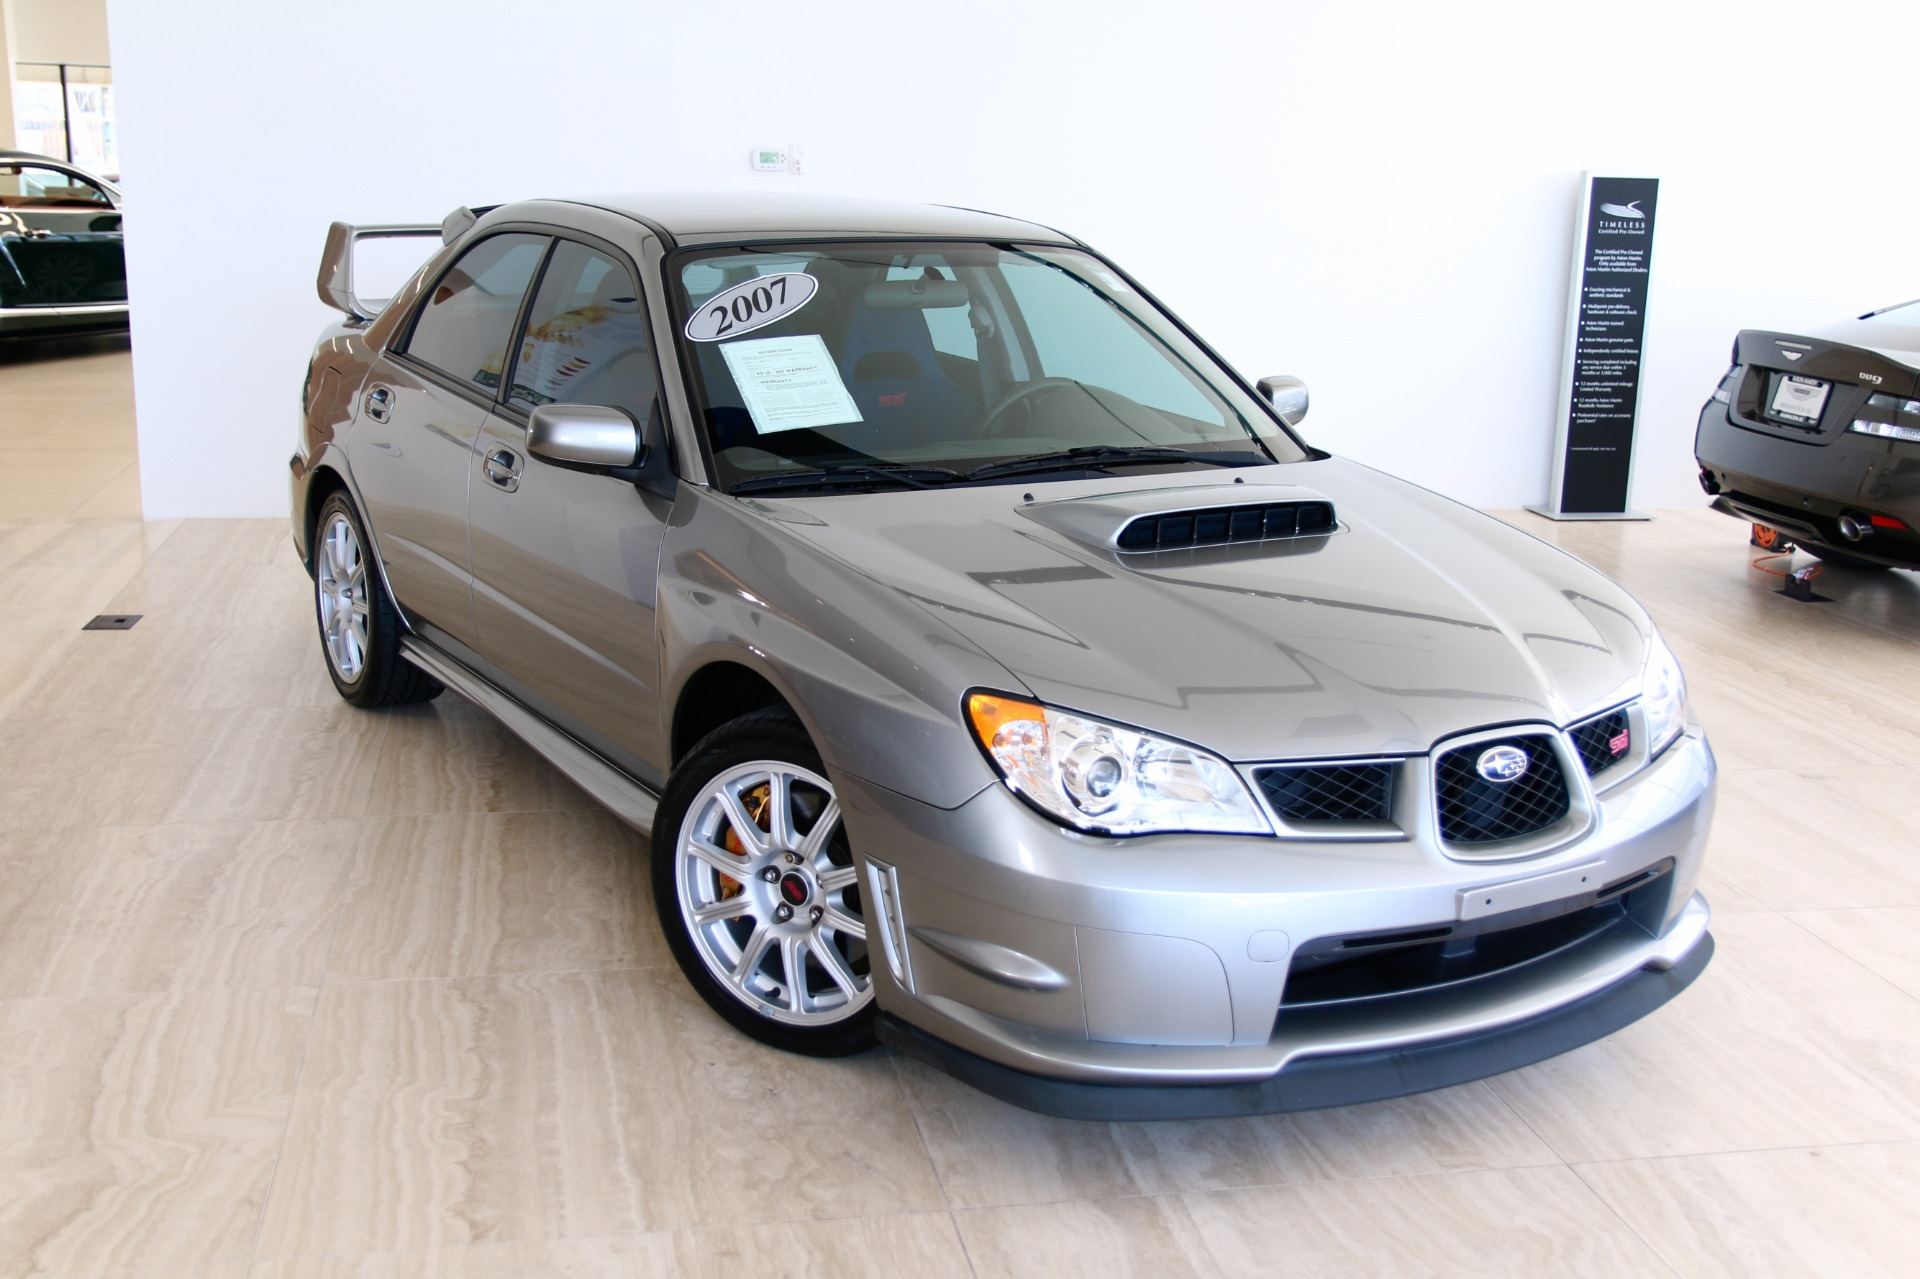 2007 Subaru Wrx Sti >> 2007 Subaru Impreza Wrx Sti Stock 7nc016052e For Sale Near